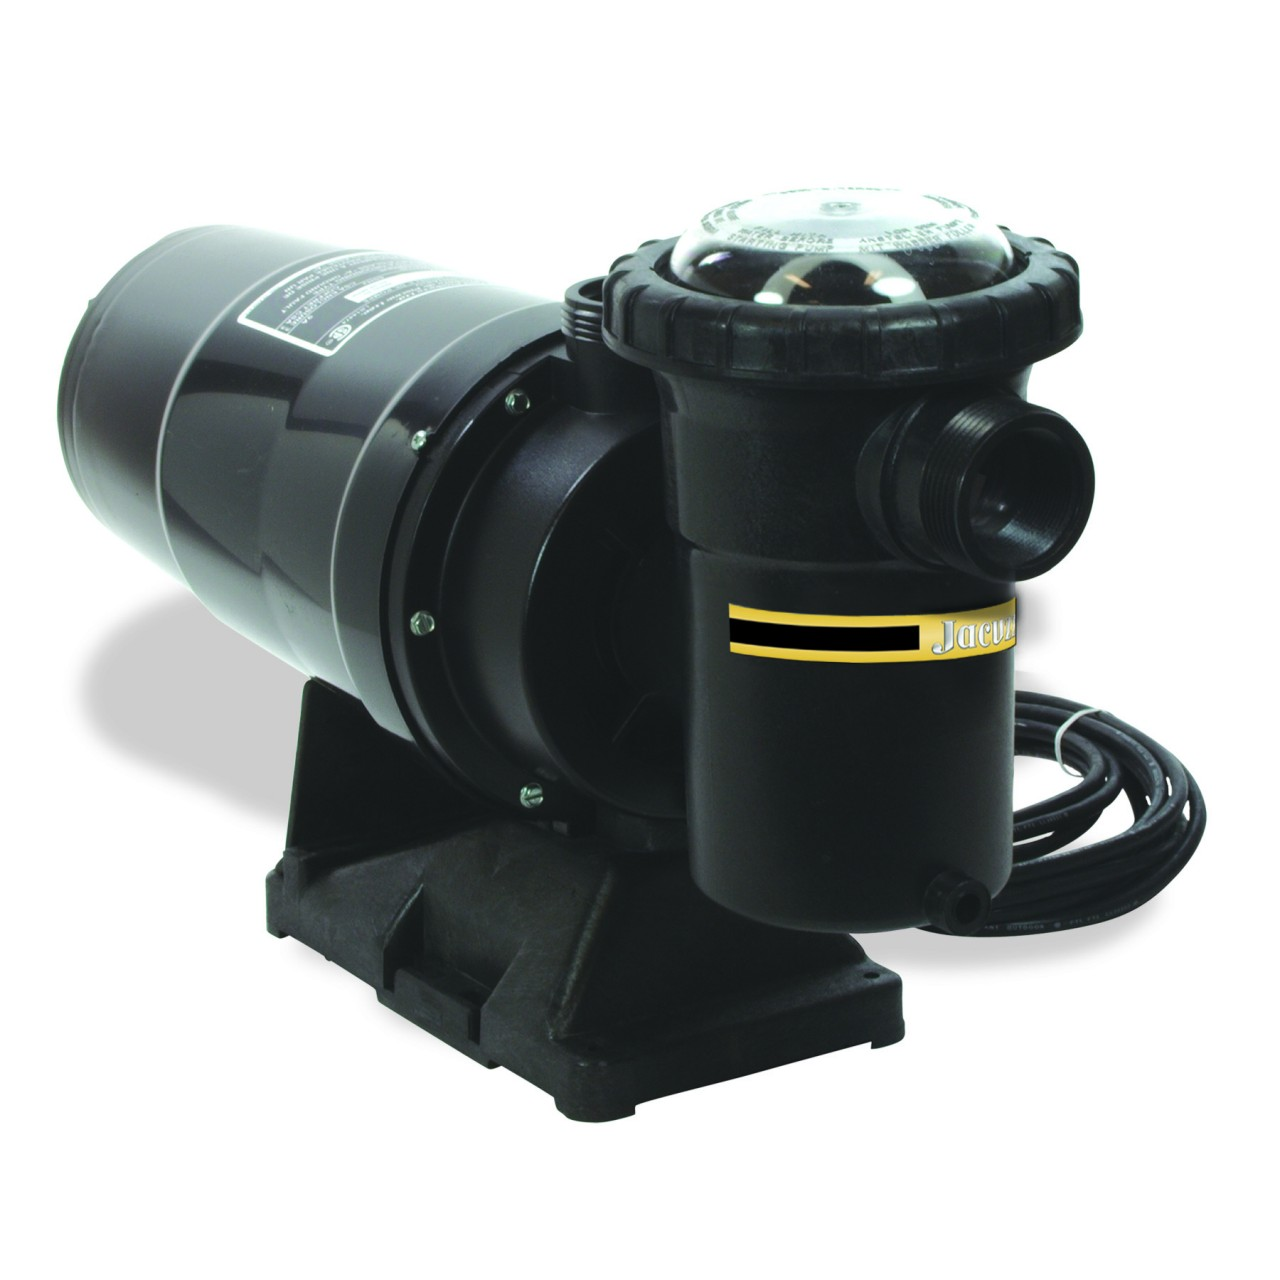 Equipment pool pumps above ground pumps 1 5 hp for Above ground pool equipment